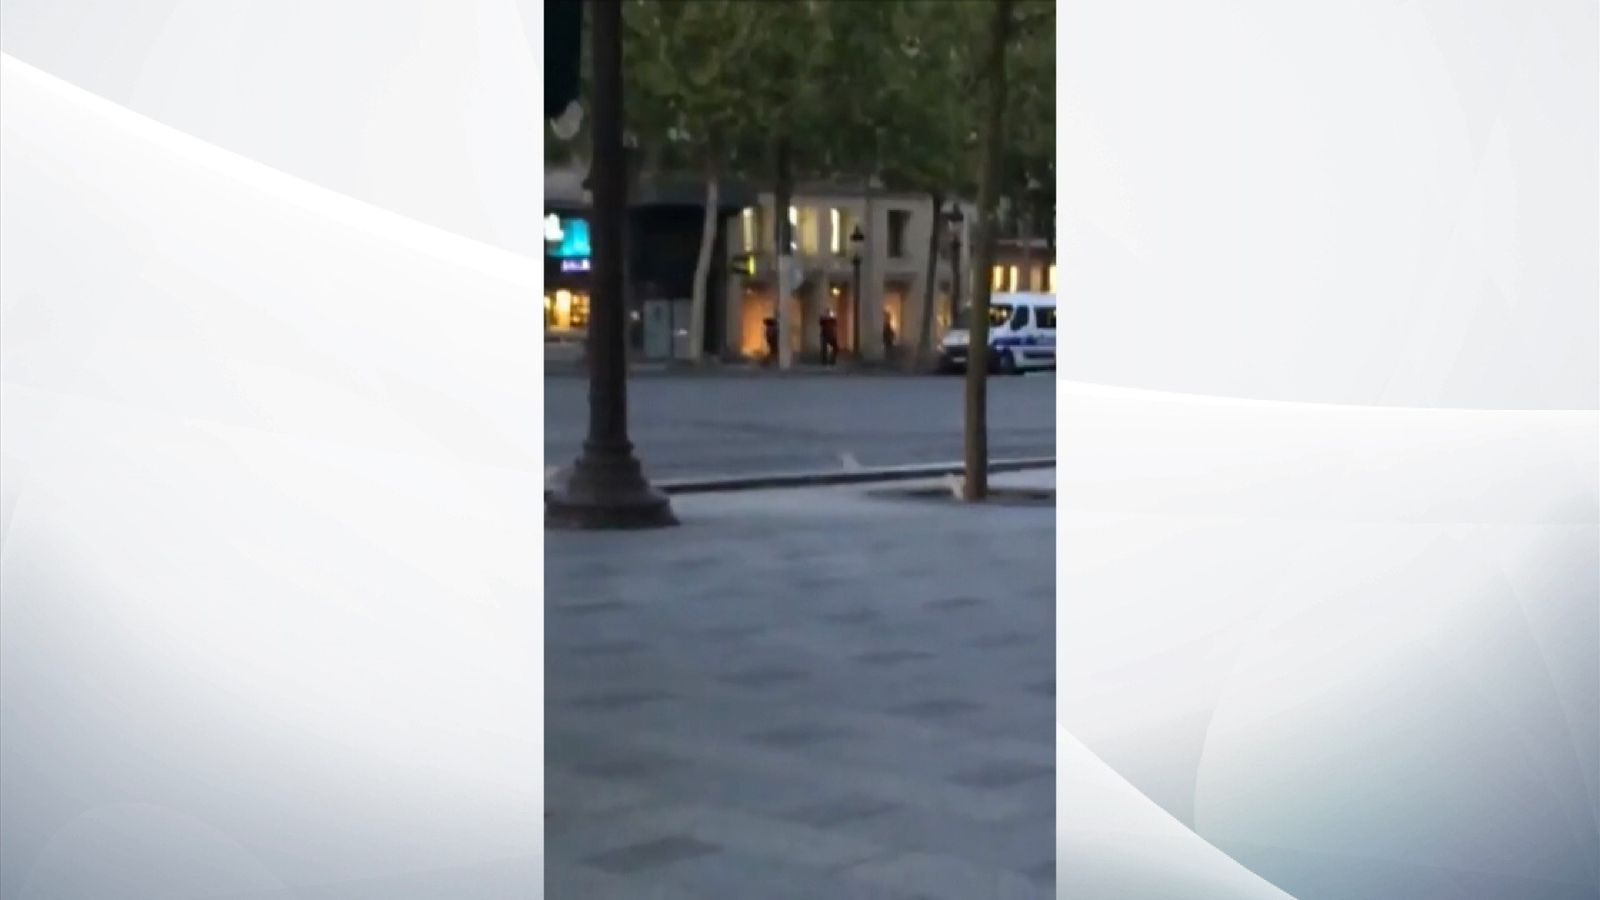 The moment the Paris shooting happened, as heard from across the street